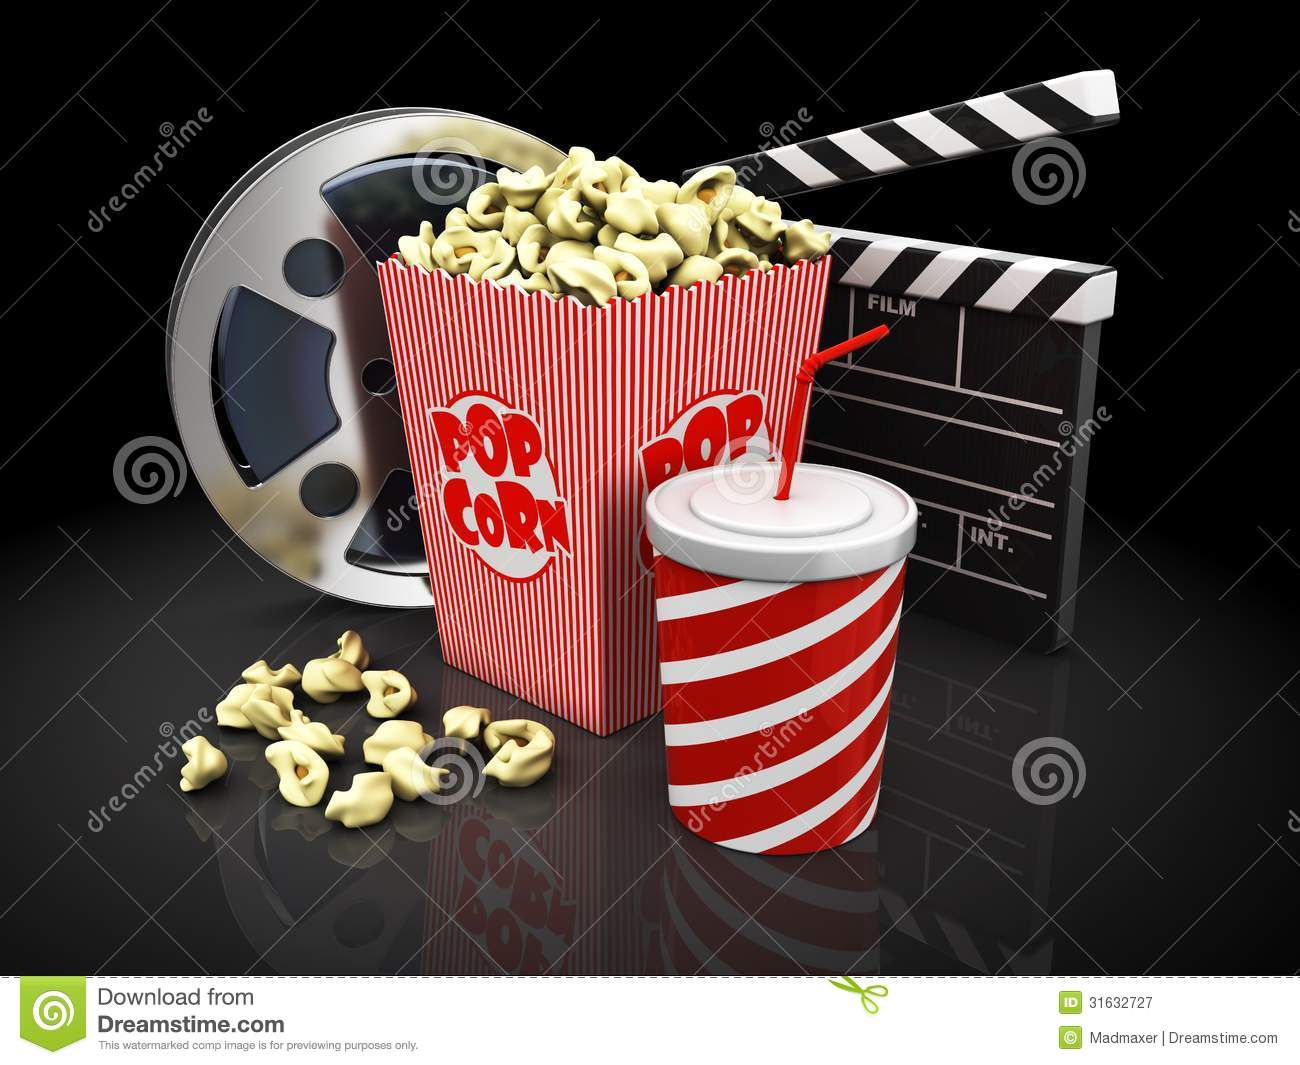 Cinema Objects Over Black Background Royalty Free Stock ...